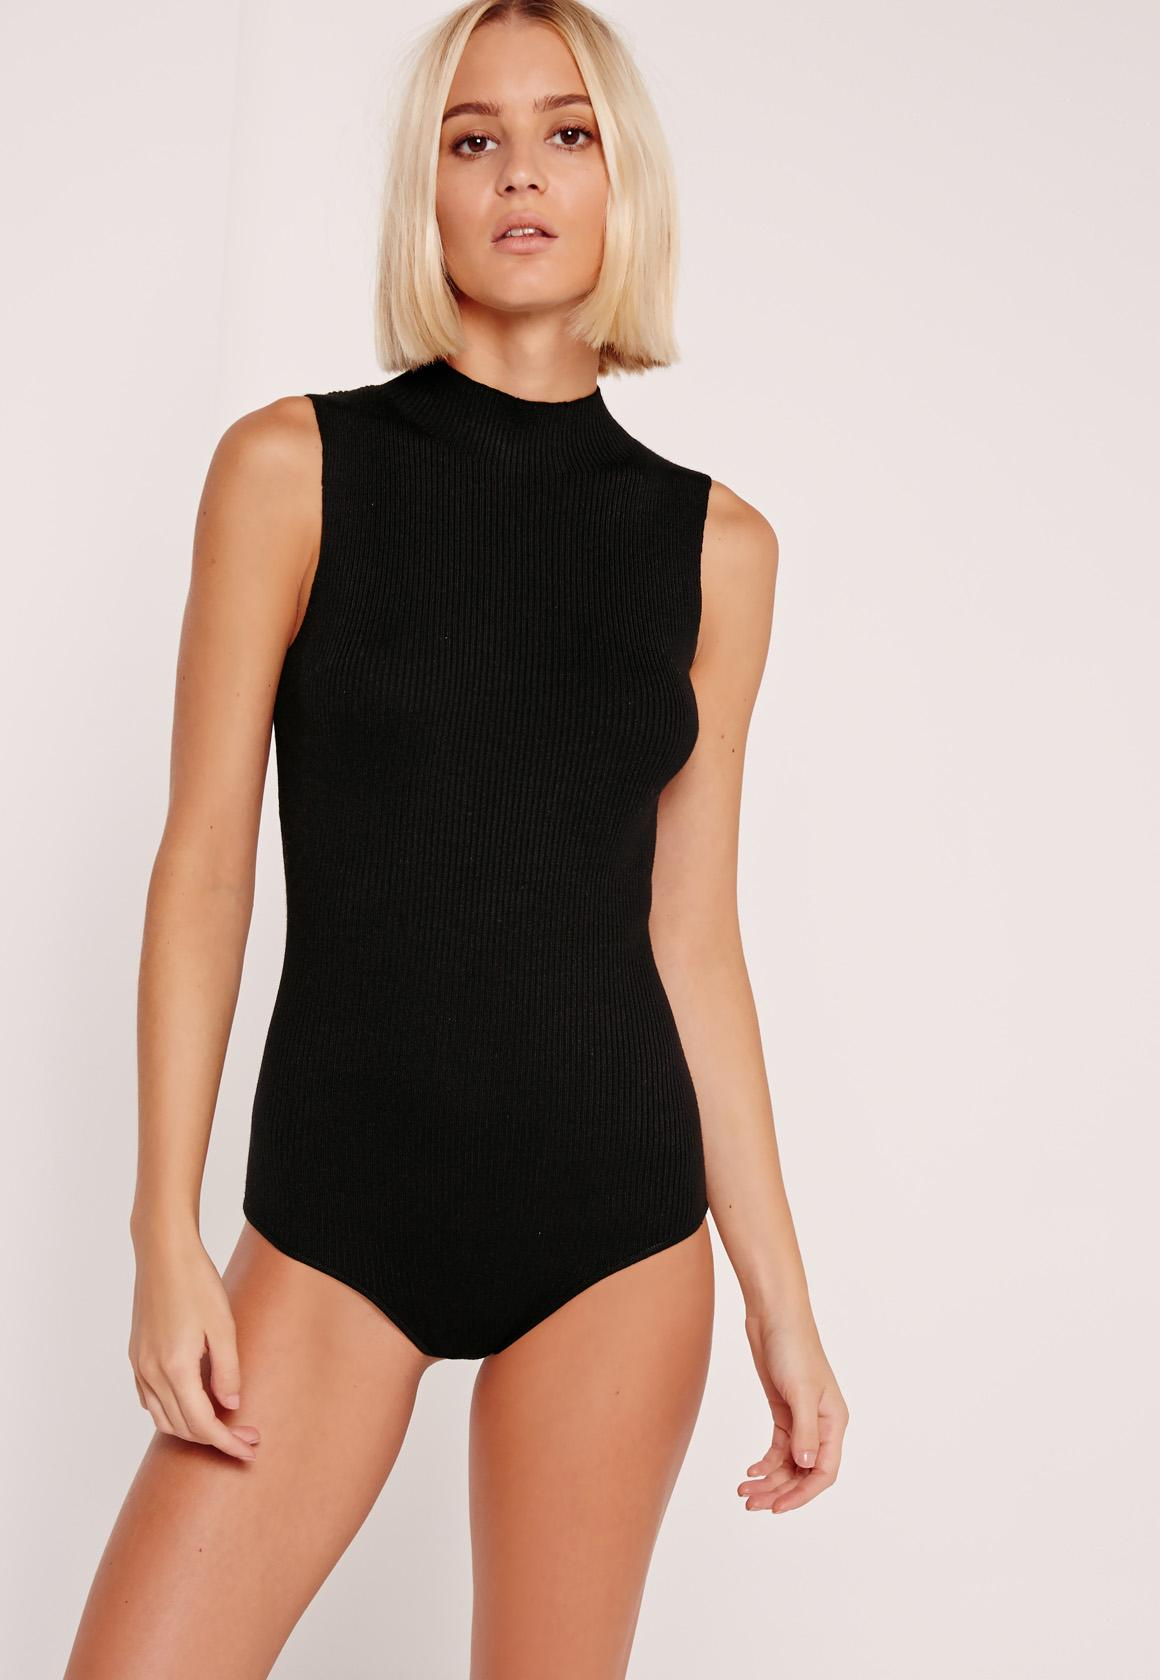 High Neck Sleeveless Bodysuit Black  Missguided